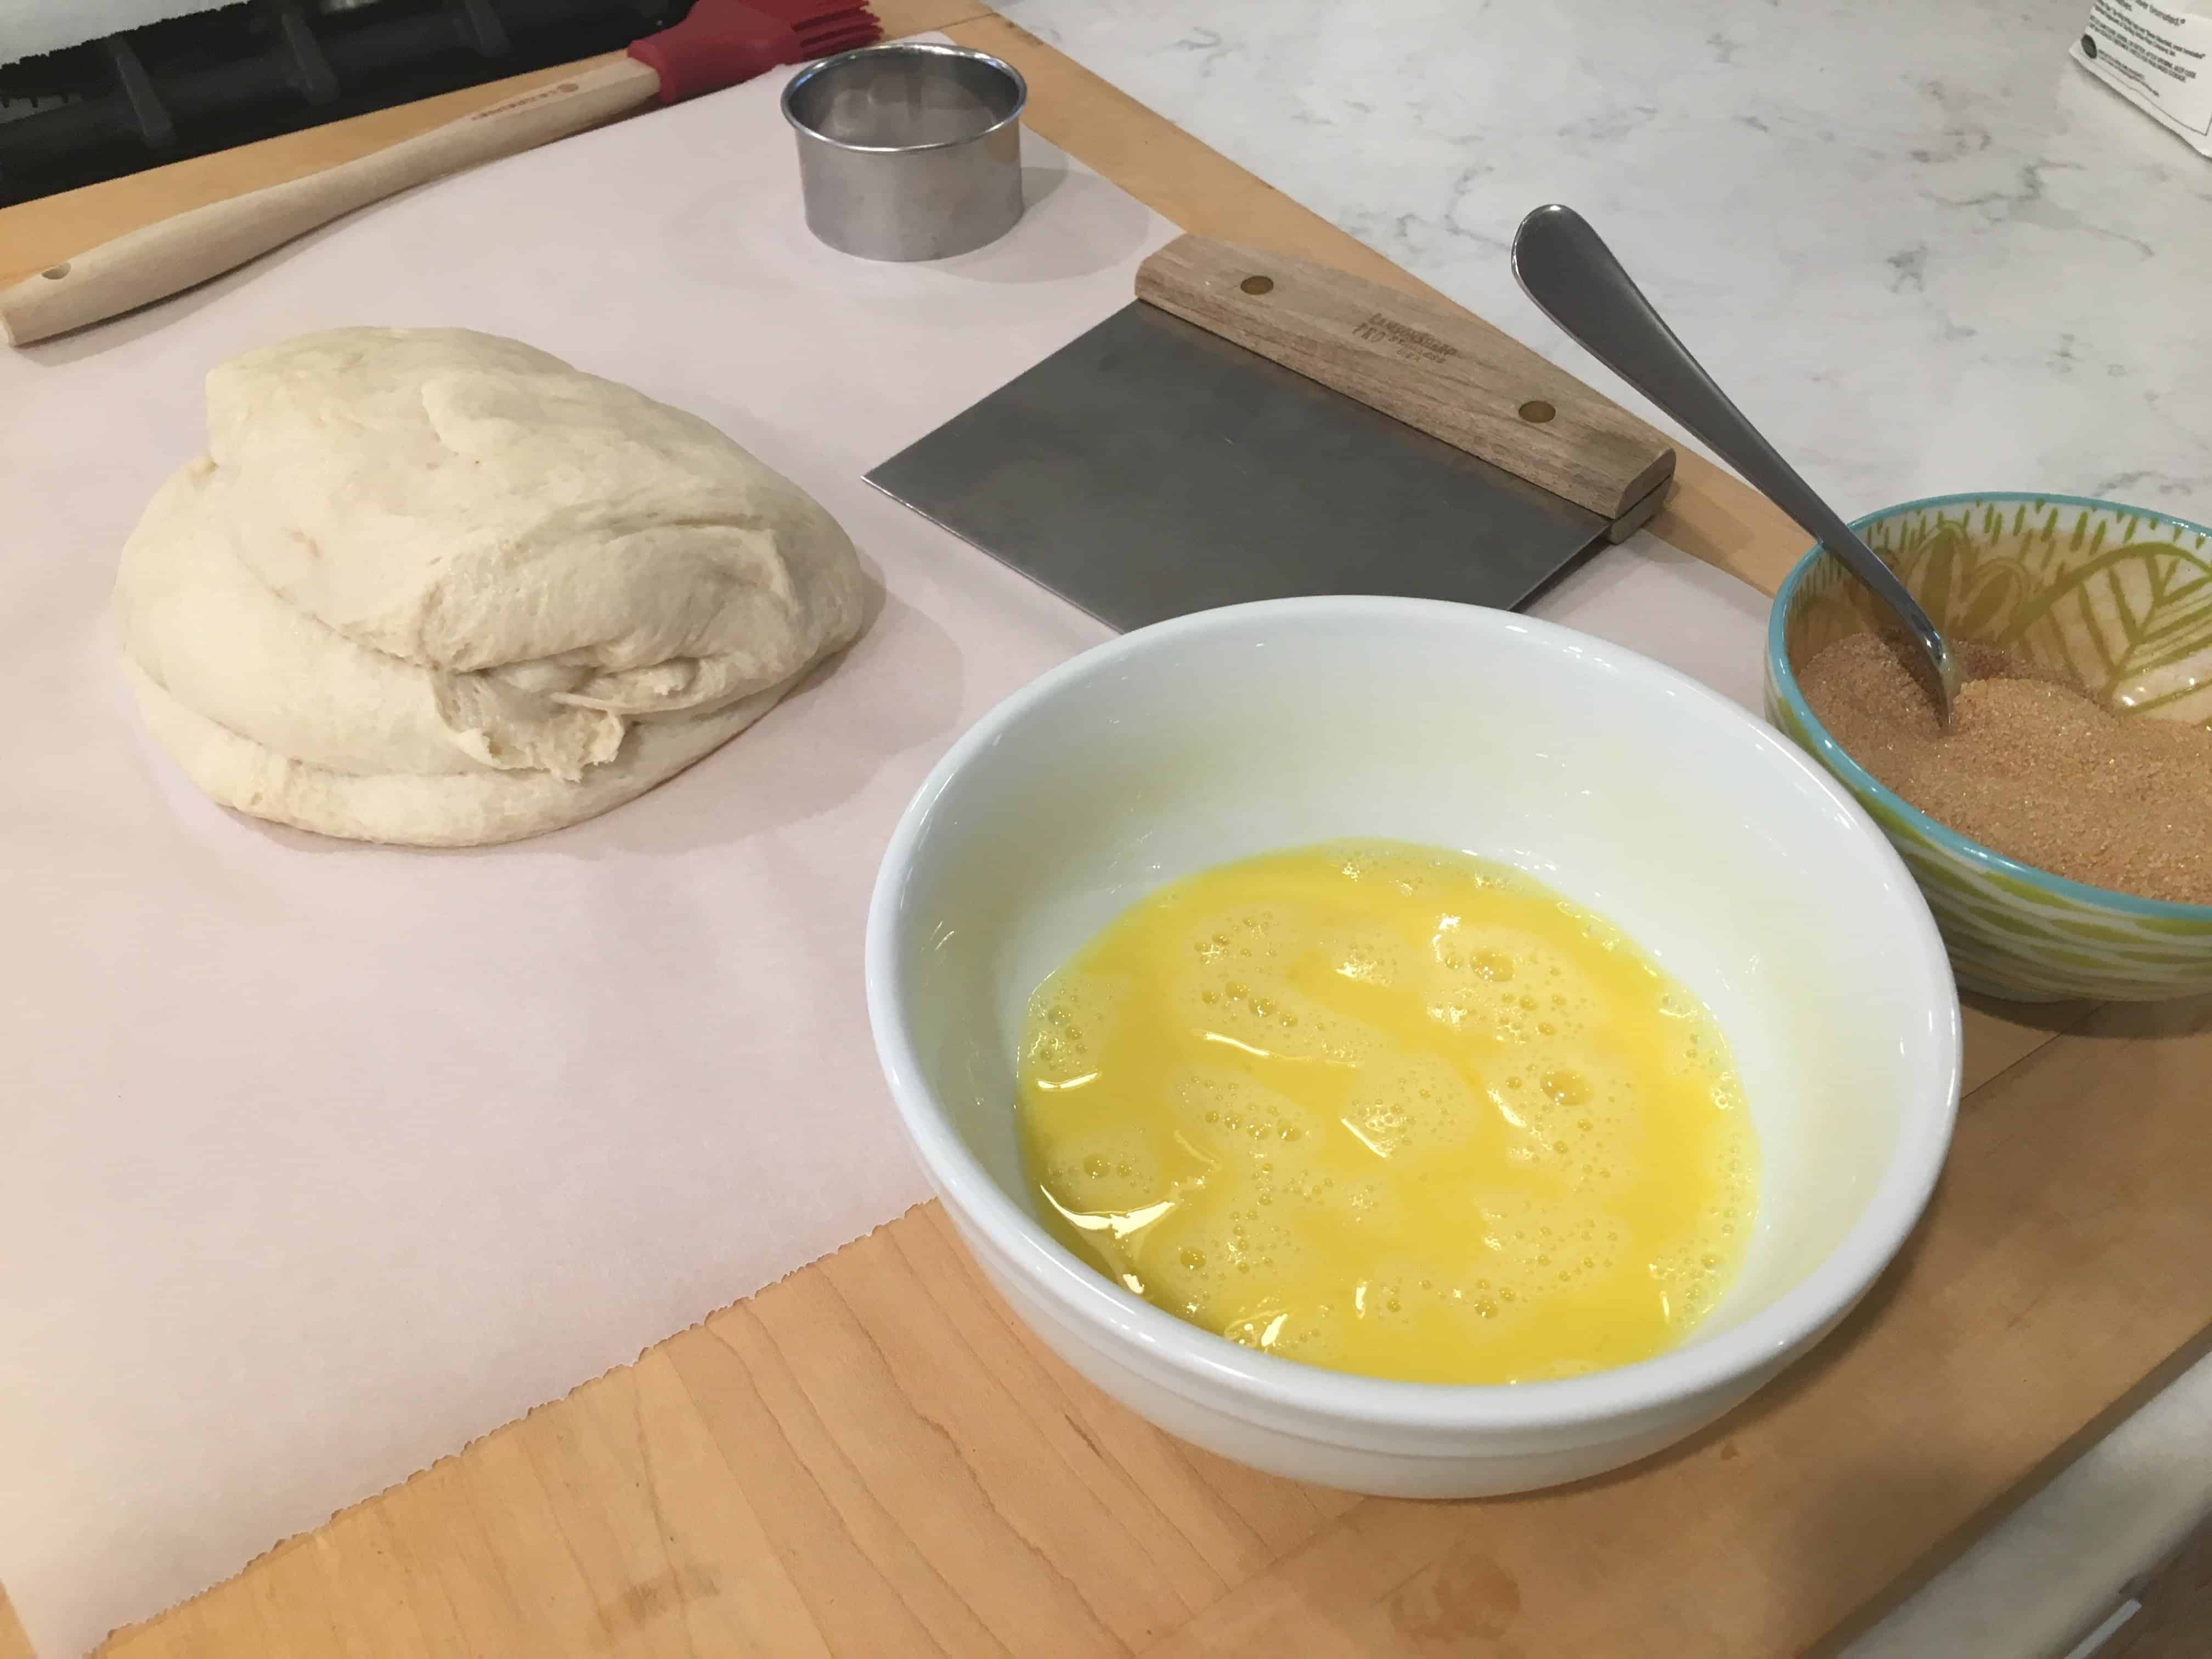 mound of dough on a table with a bowl of egg wash